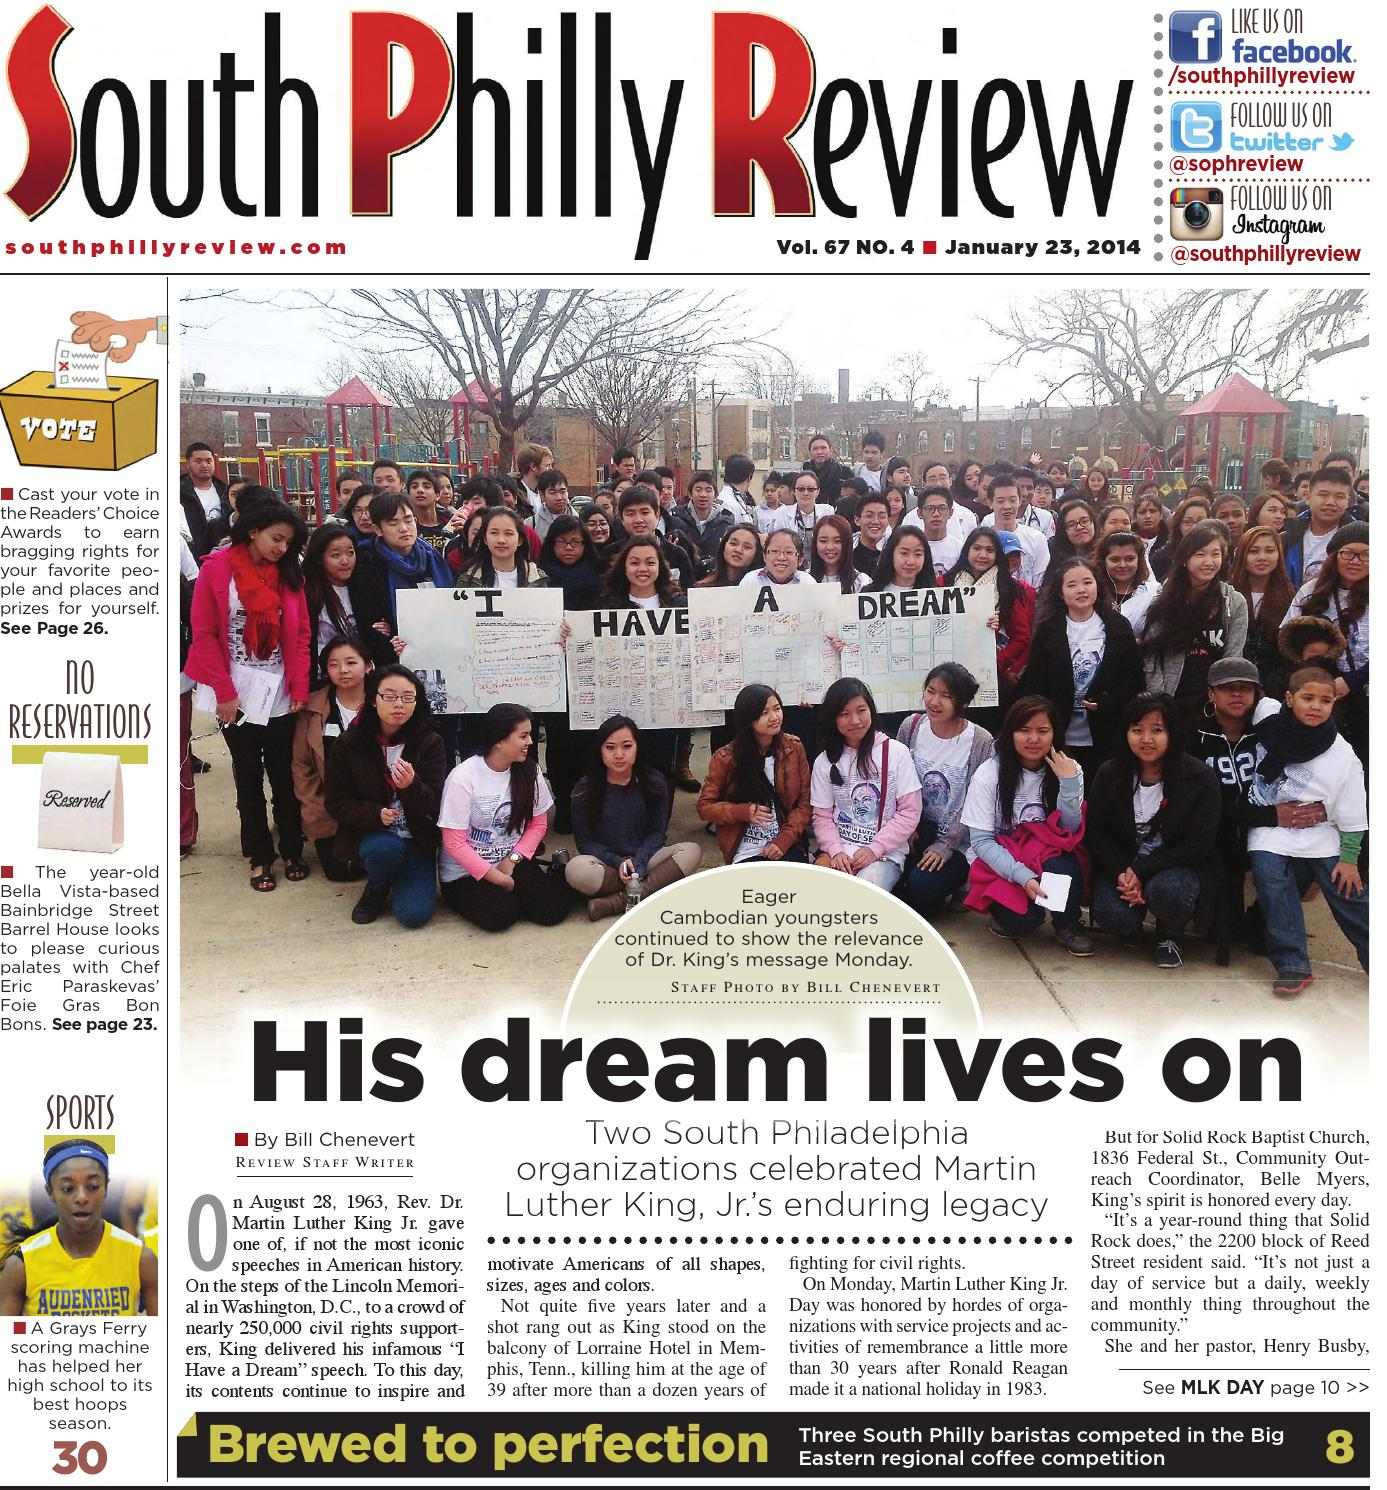 Free Civil Rights Webinar At 3pm 927 >> South Philly Review 1 23 2014 By South Philly Review Issuu